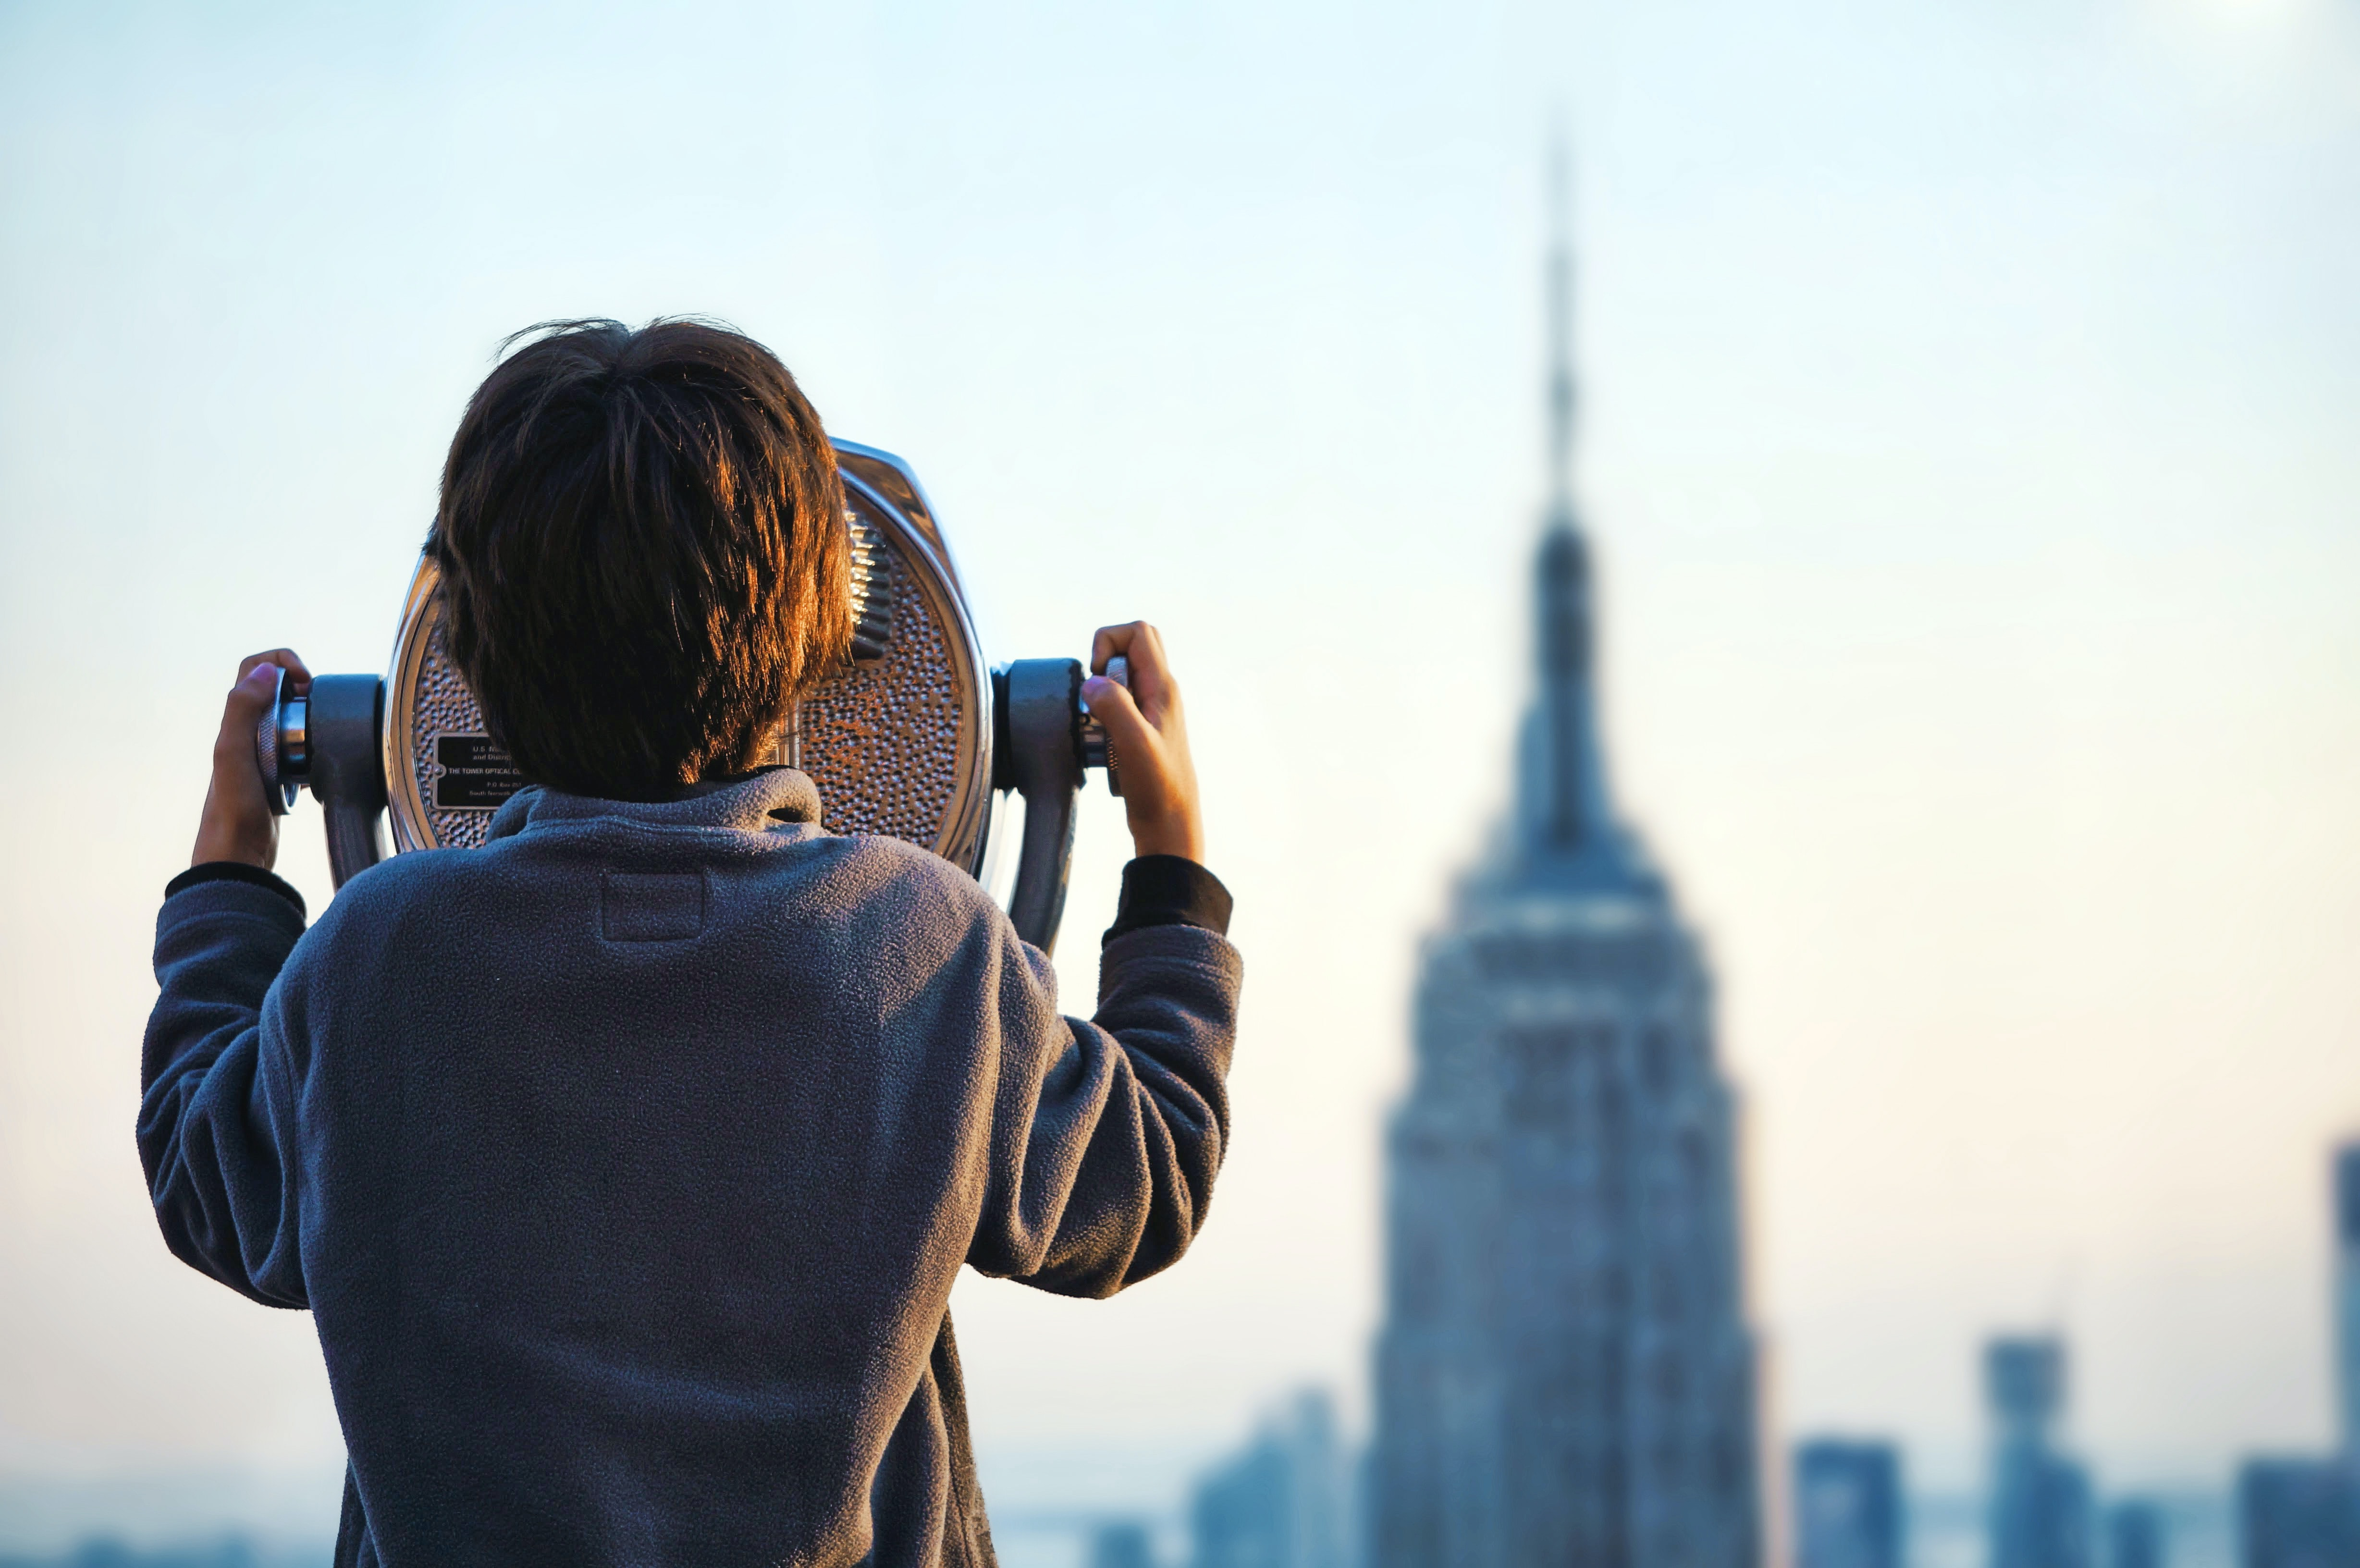 A child looking through a tower viewer in New York